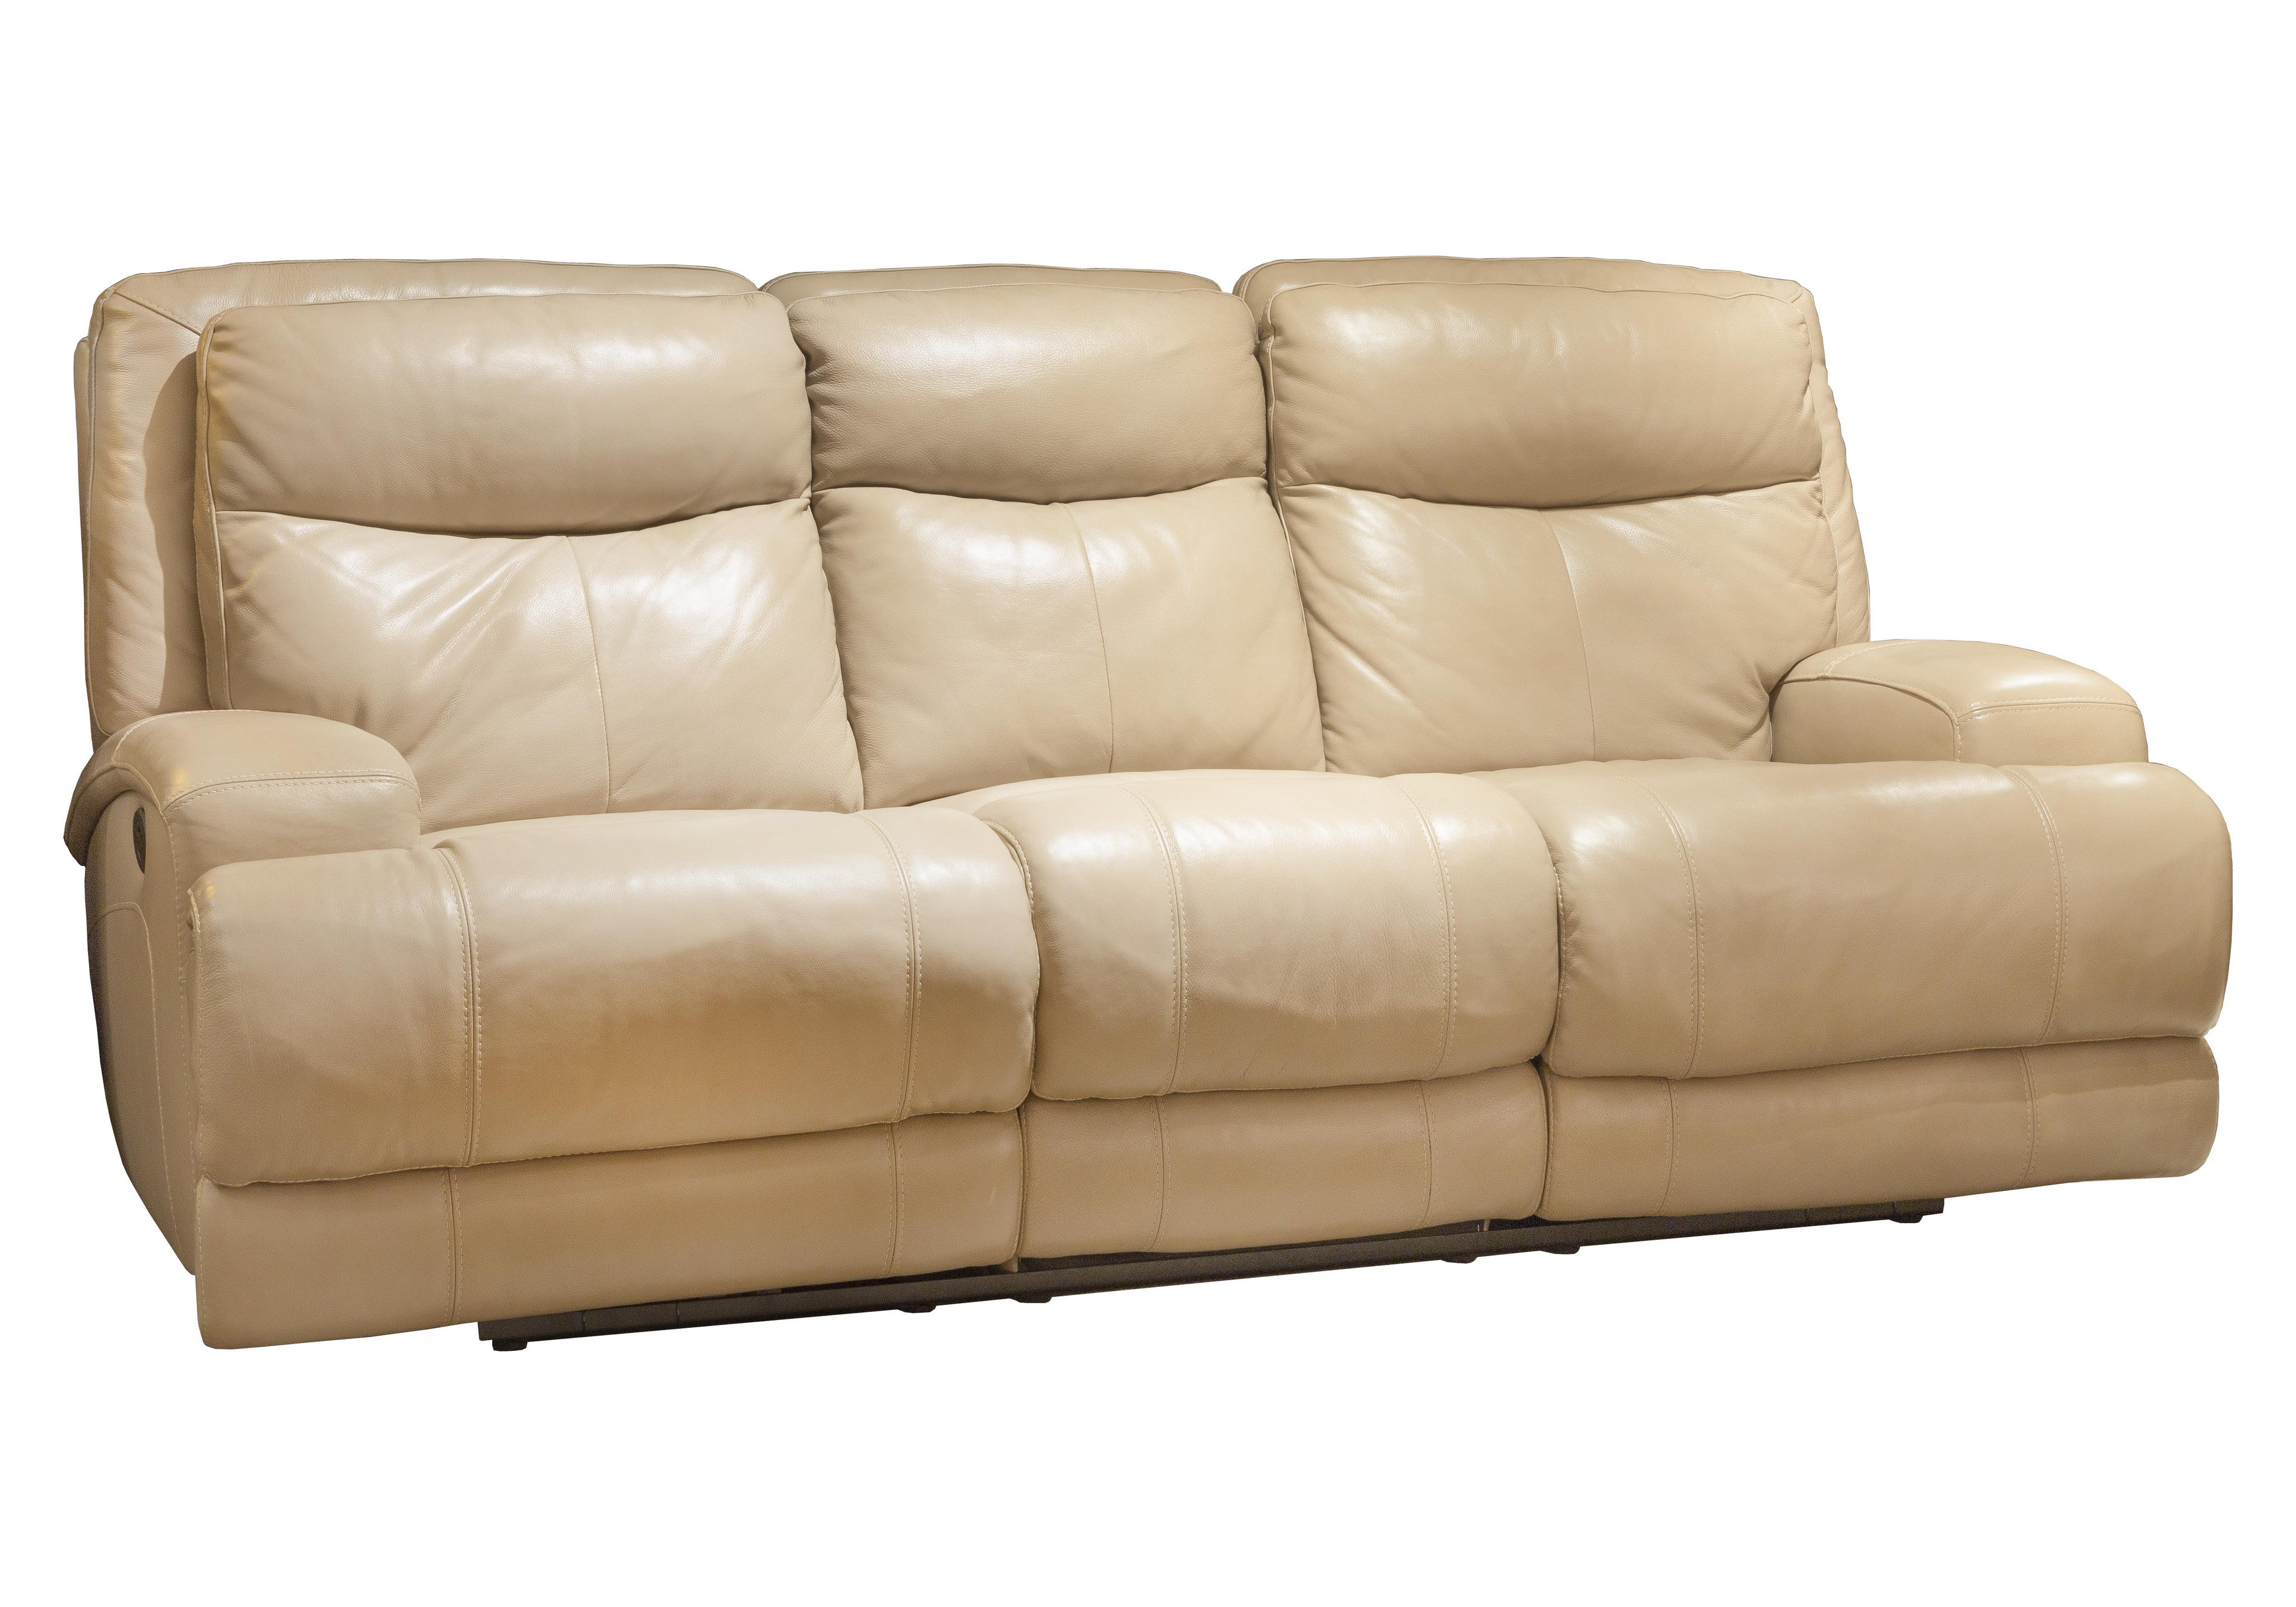 3692ED Power Recliner Leather Sofa Beige Violino Limited